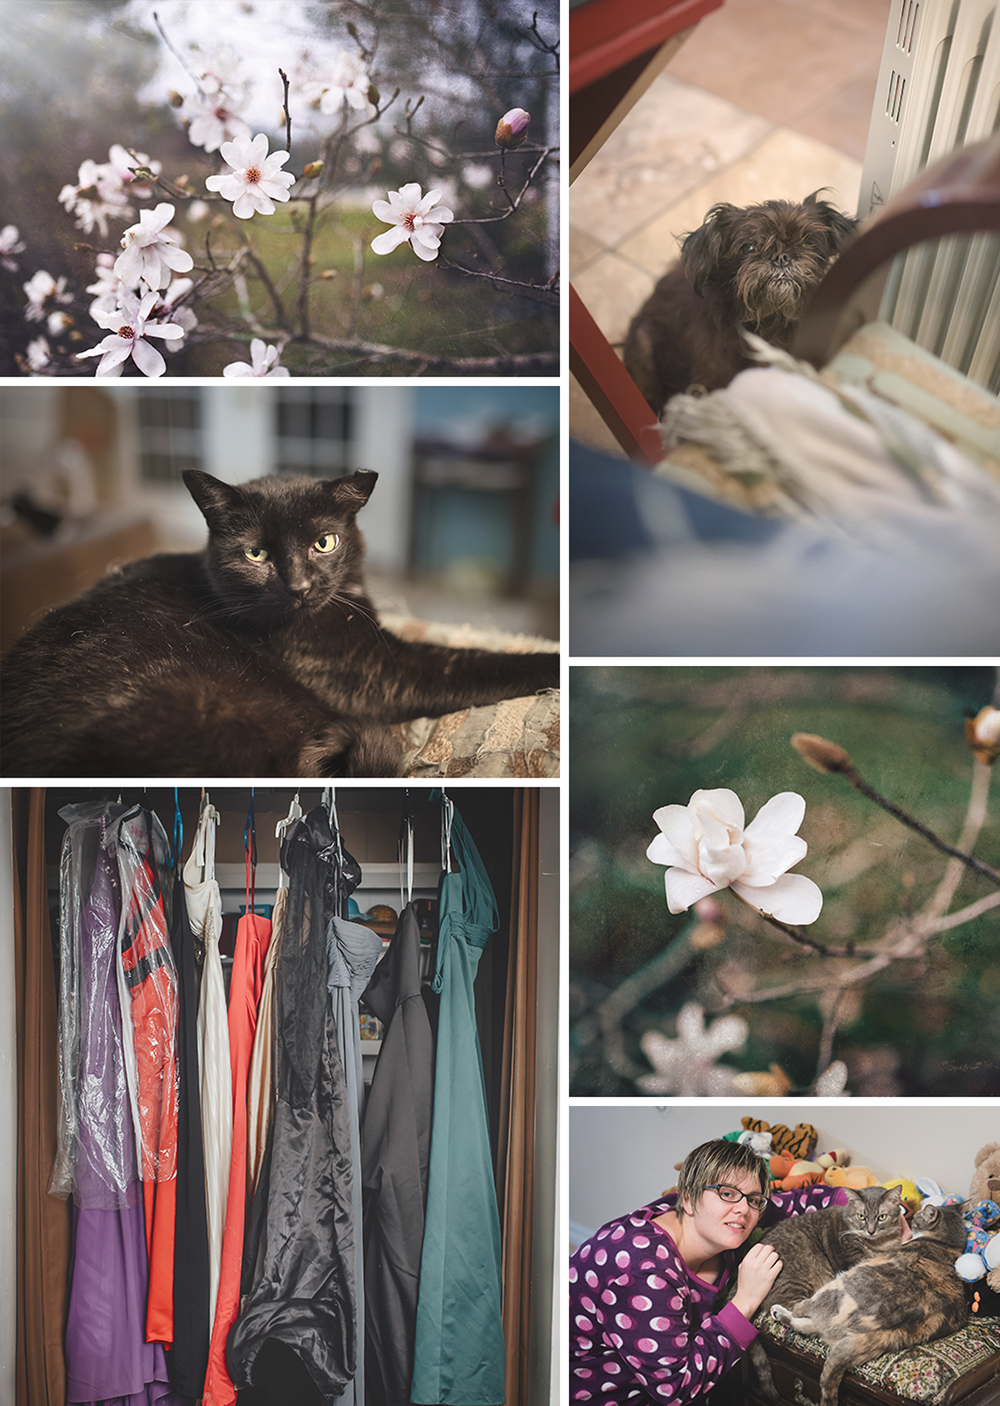 A few more of my week 2 favs: Japanese cherry blossoms from my in-laws tree - one of my favorite flowers; my fur baby, Aro, has taken over my editing chair; Scrappy still freezing; my collection of new dresses for conceptual shoots (yes, I have a dress buying addiction); my sister with her fur babies.